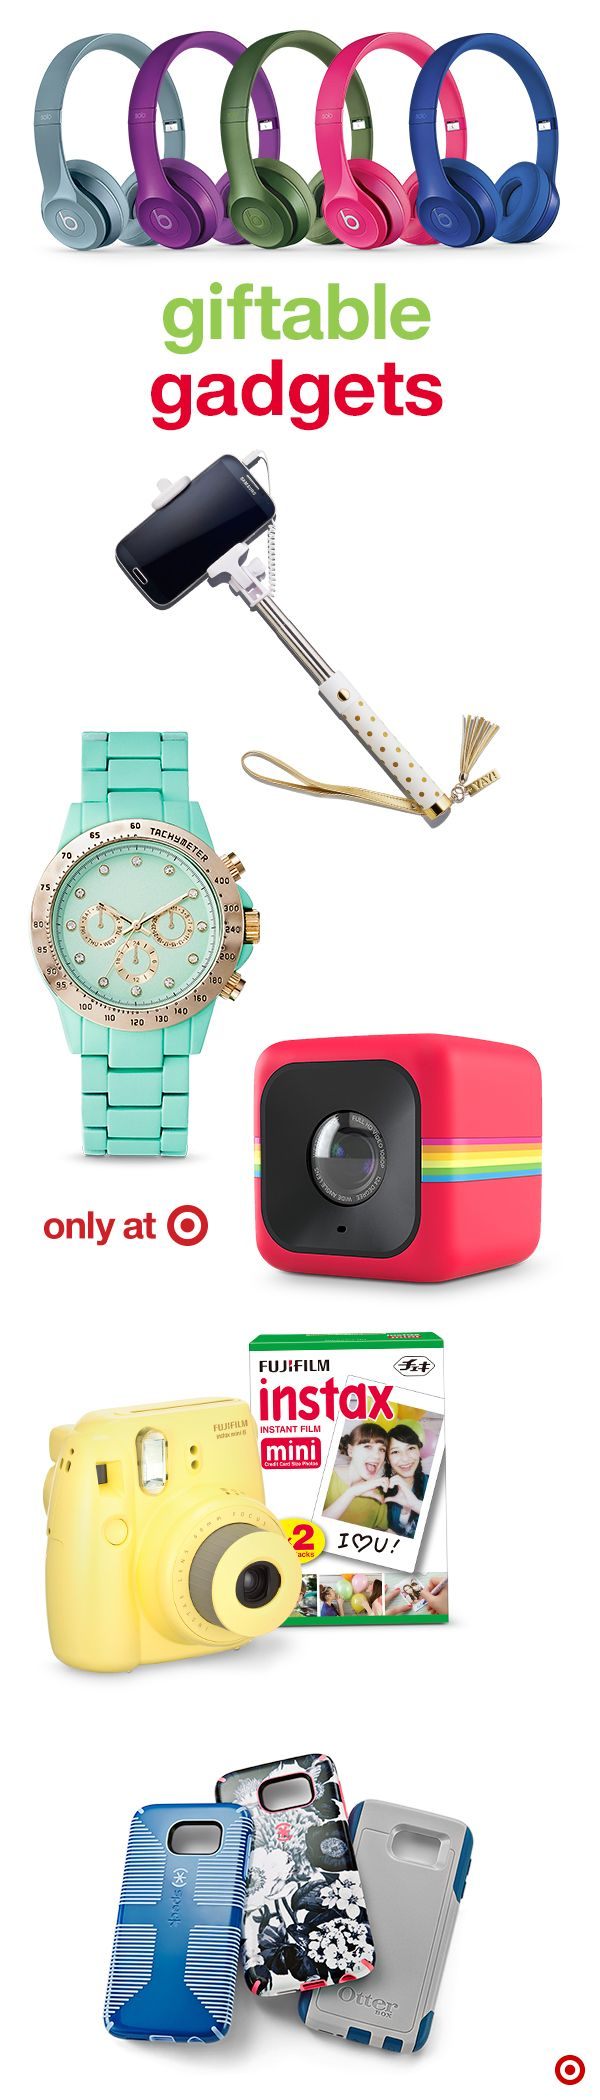 What gifts will teens totally love? Anything electronic, really. Up the cool factor with Christmas gifts that are a surefire hit—from cell phone accessories like protective covers and selfie sticks (available with fun characters like Hello Kitty and Teenage Mutant Ninja Turtles), to digital camcorders and a nod to the retro instant film camera. Start checking off that gift list!